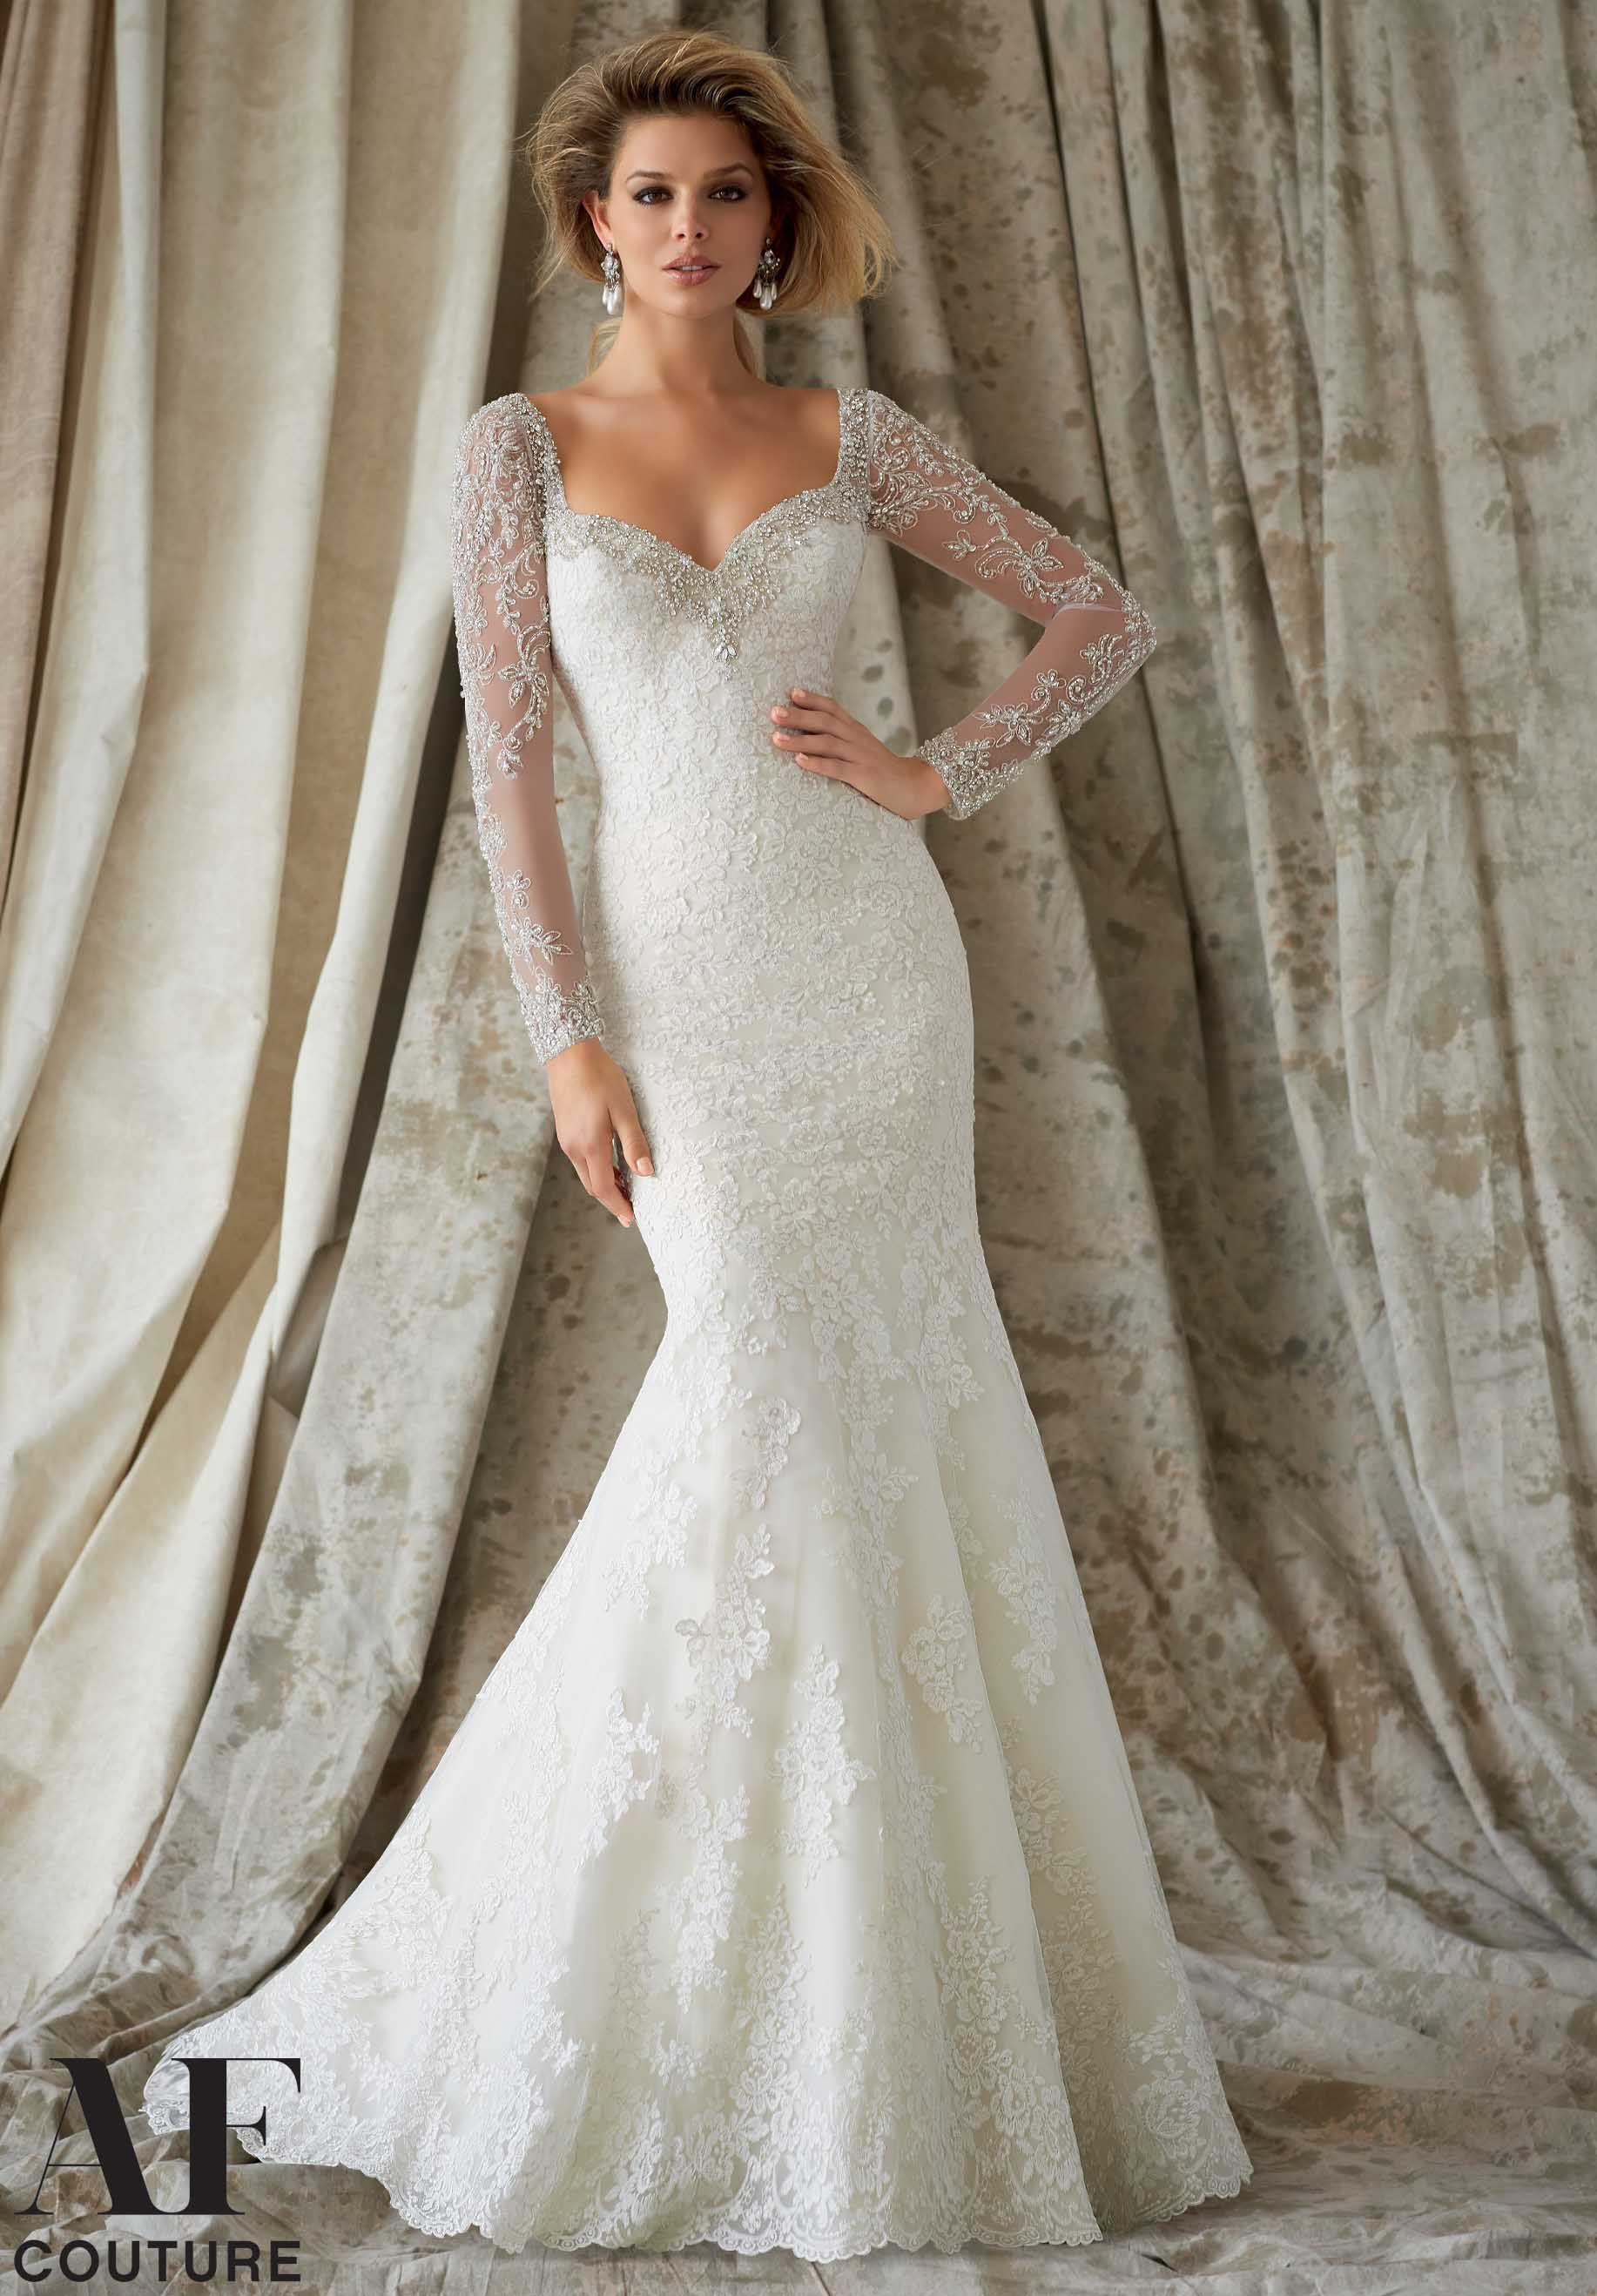 Wedding Gowns By AF Couture featuring Embroidered Lace Appliques on ...